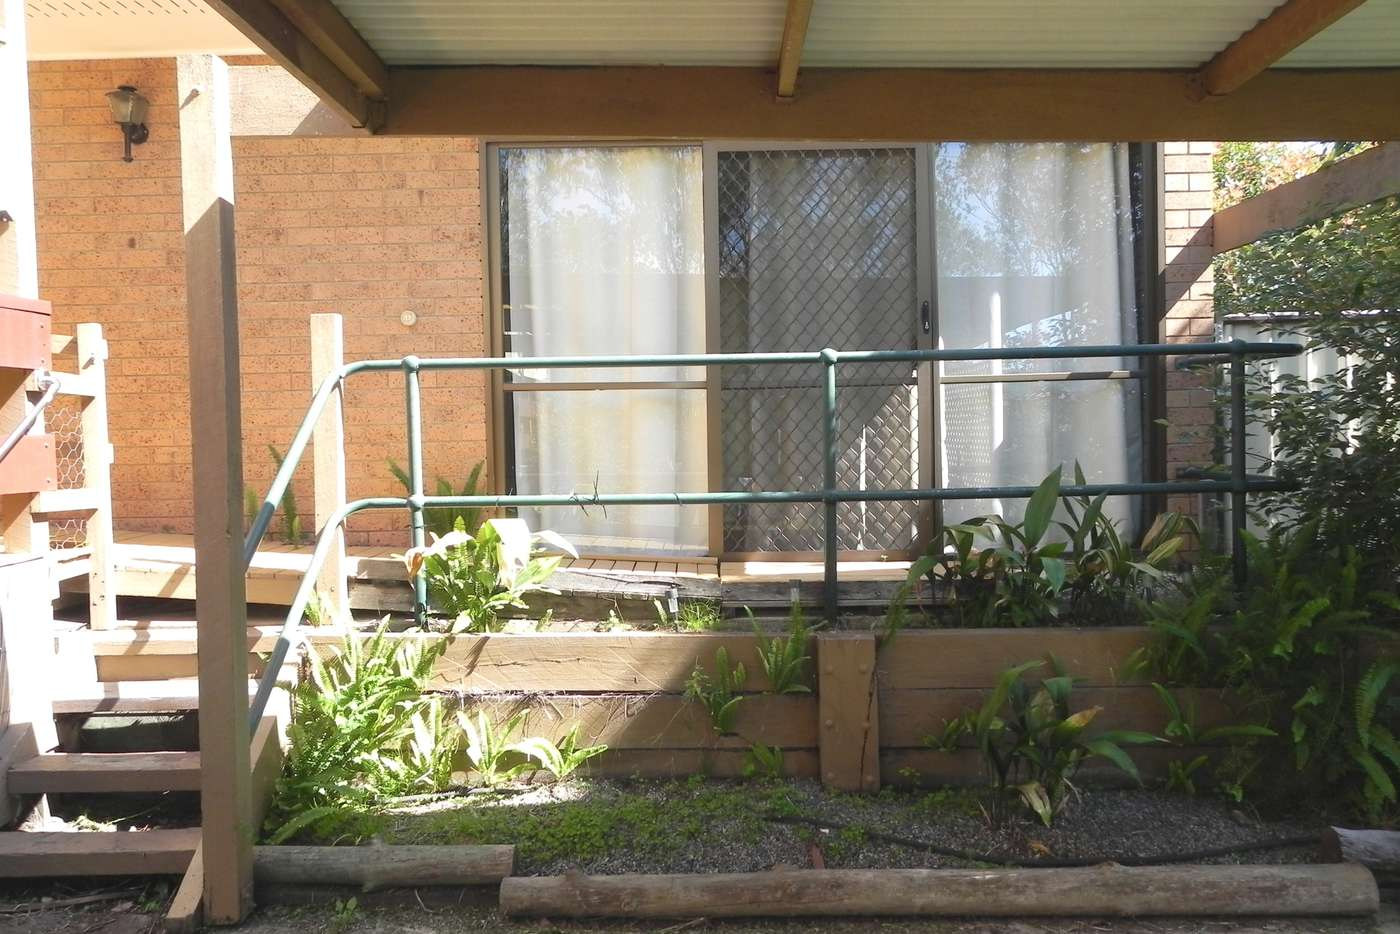 Main view of Homely house listing, 7 Chester St, Nanango QLD 4615